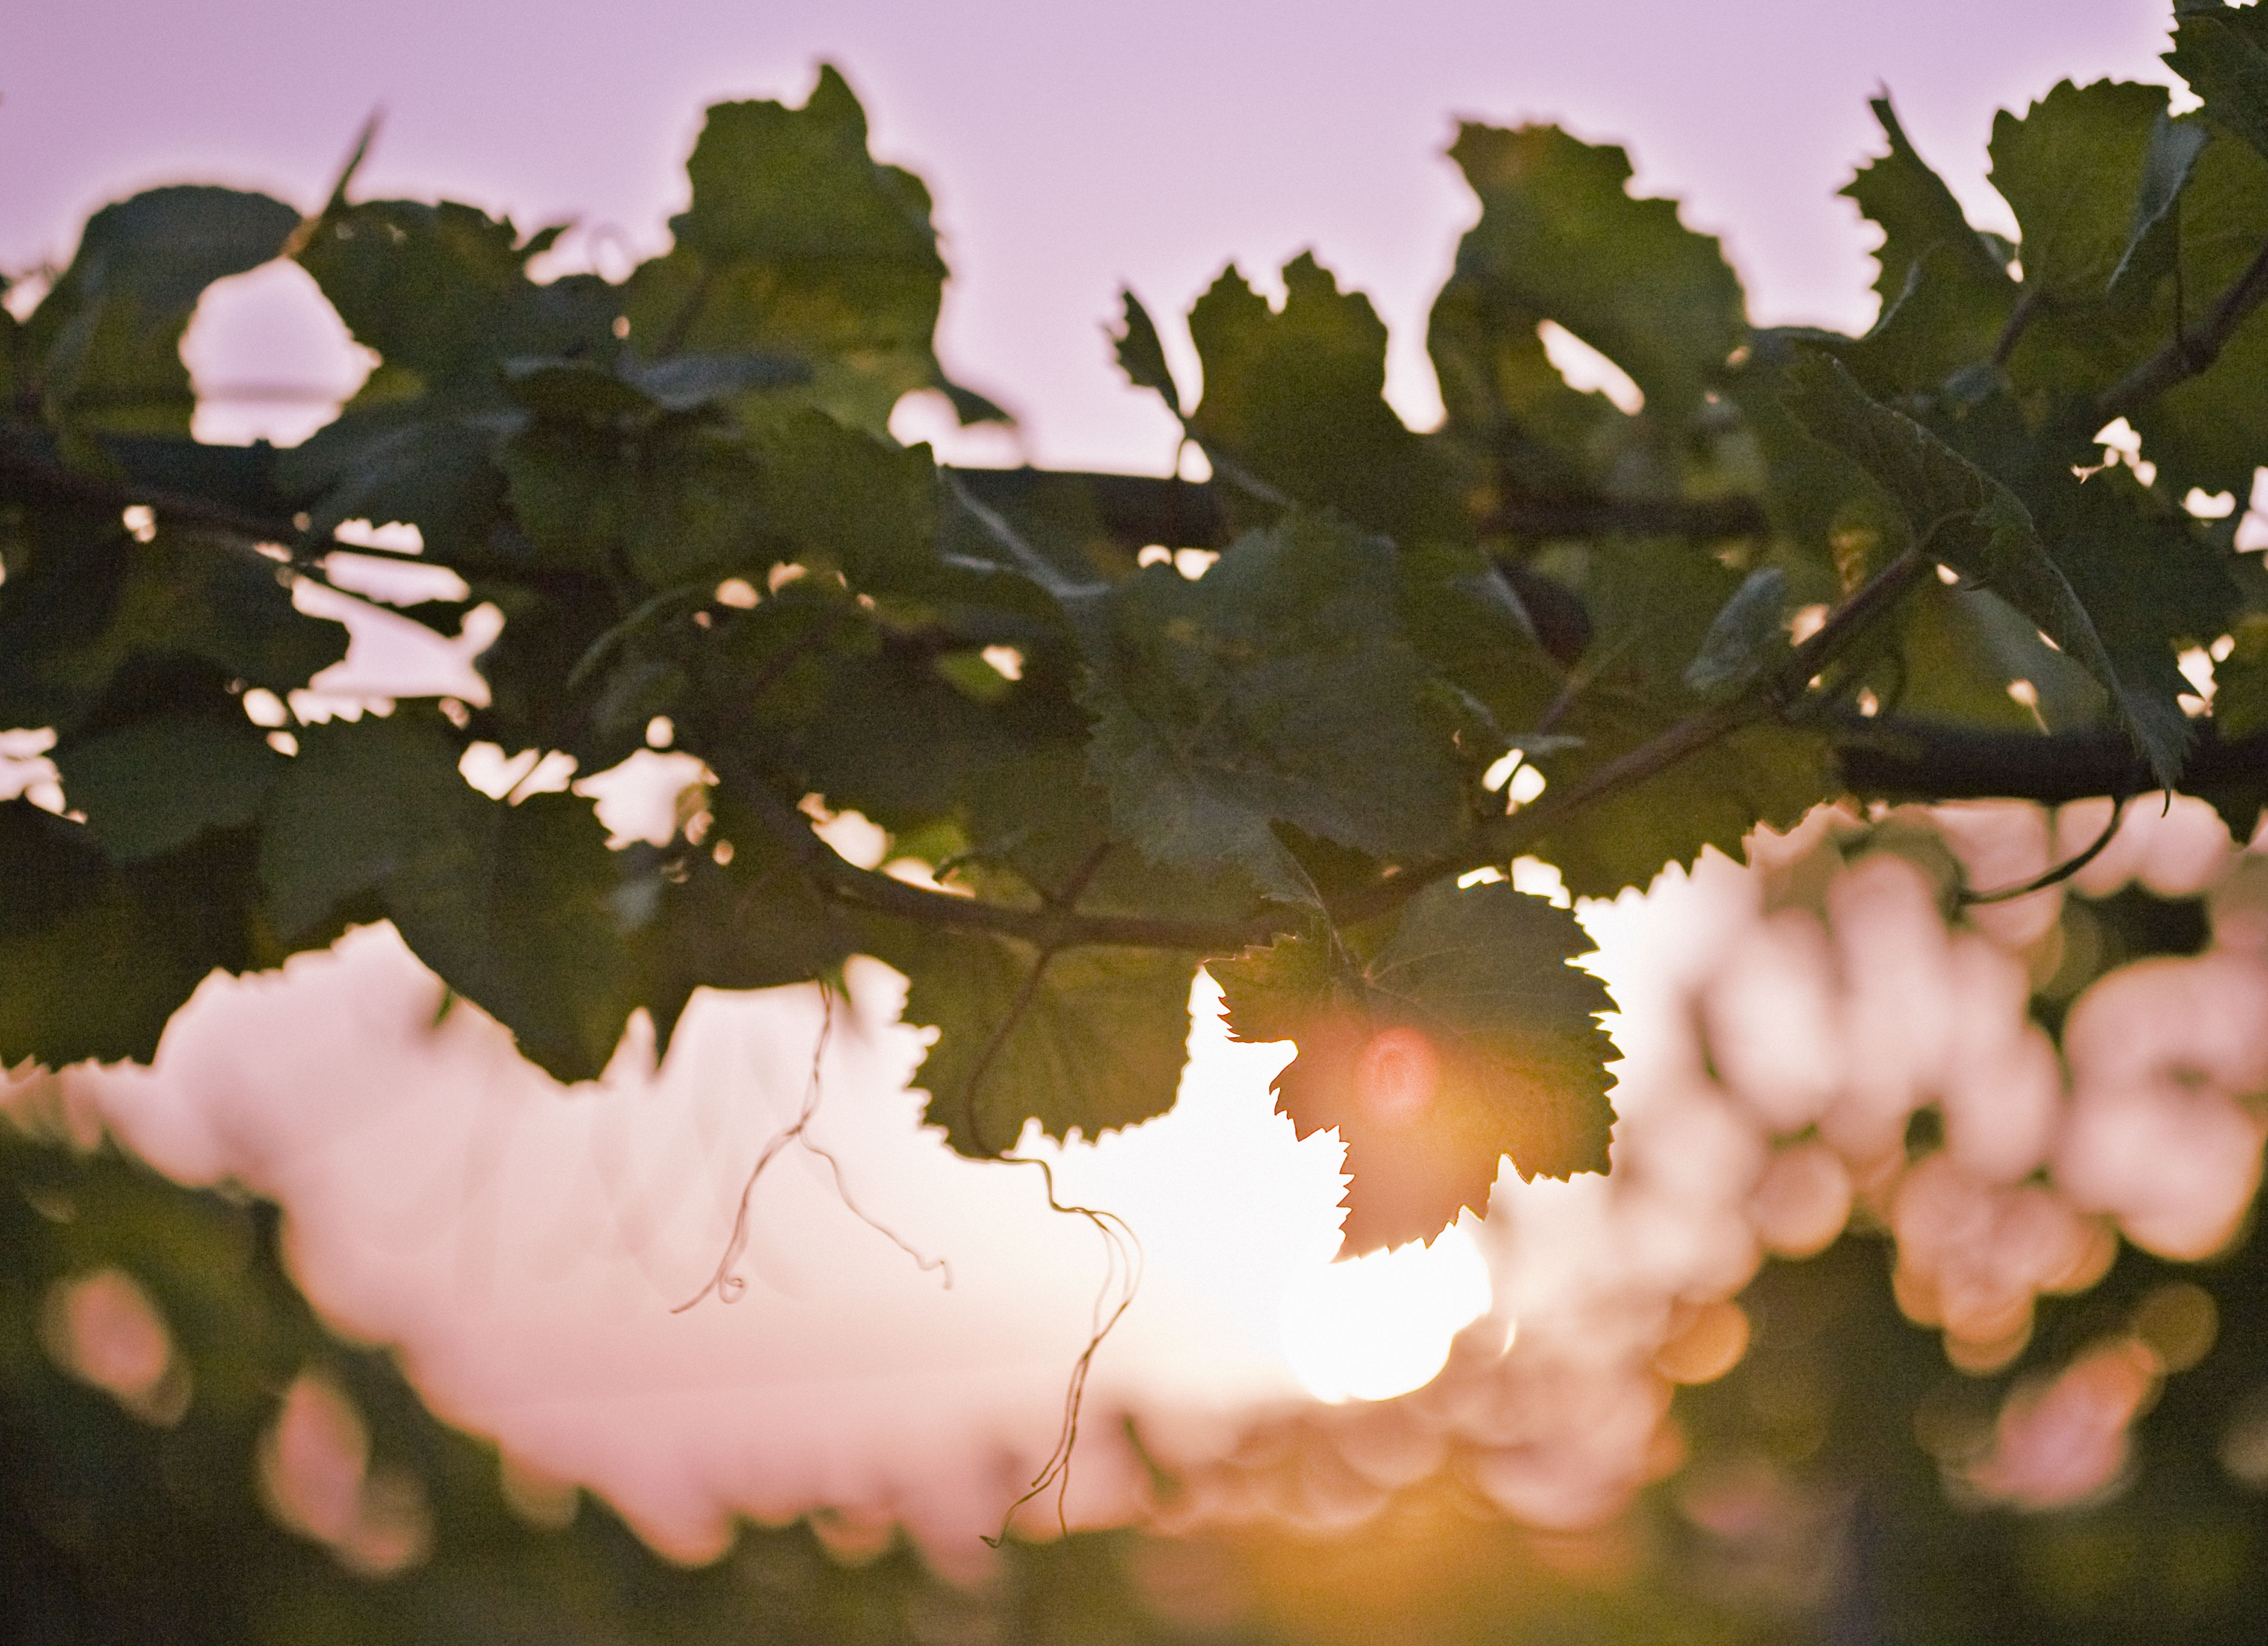 Vines tendrils at sunset, close-up